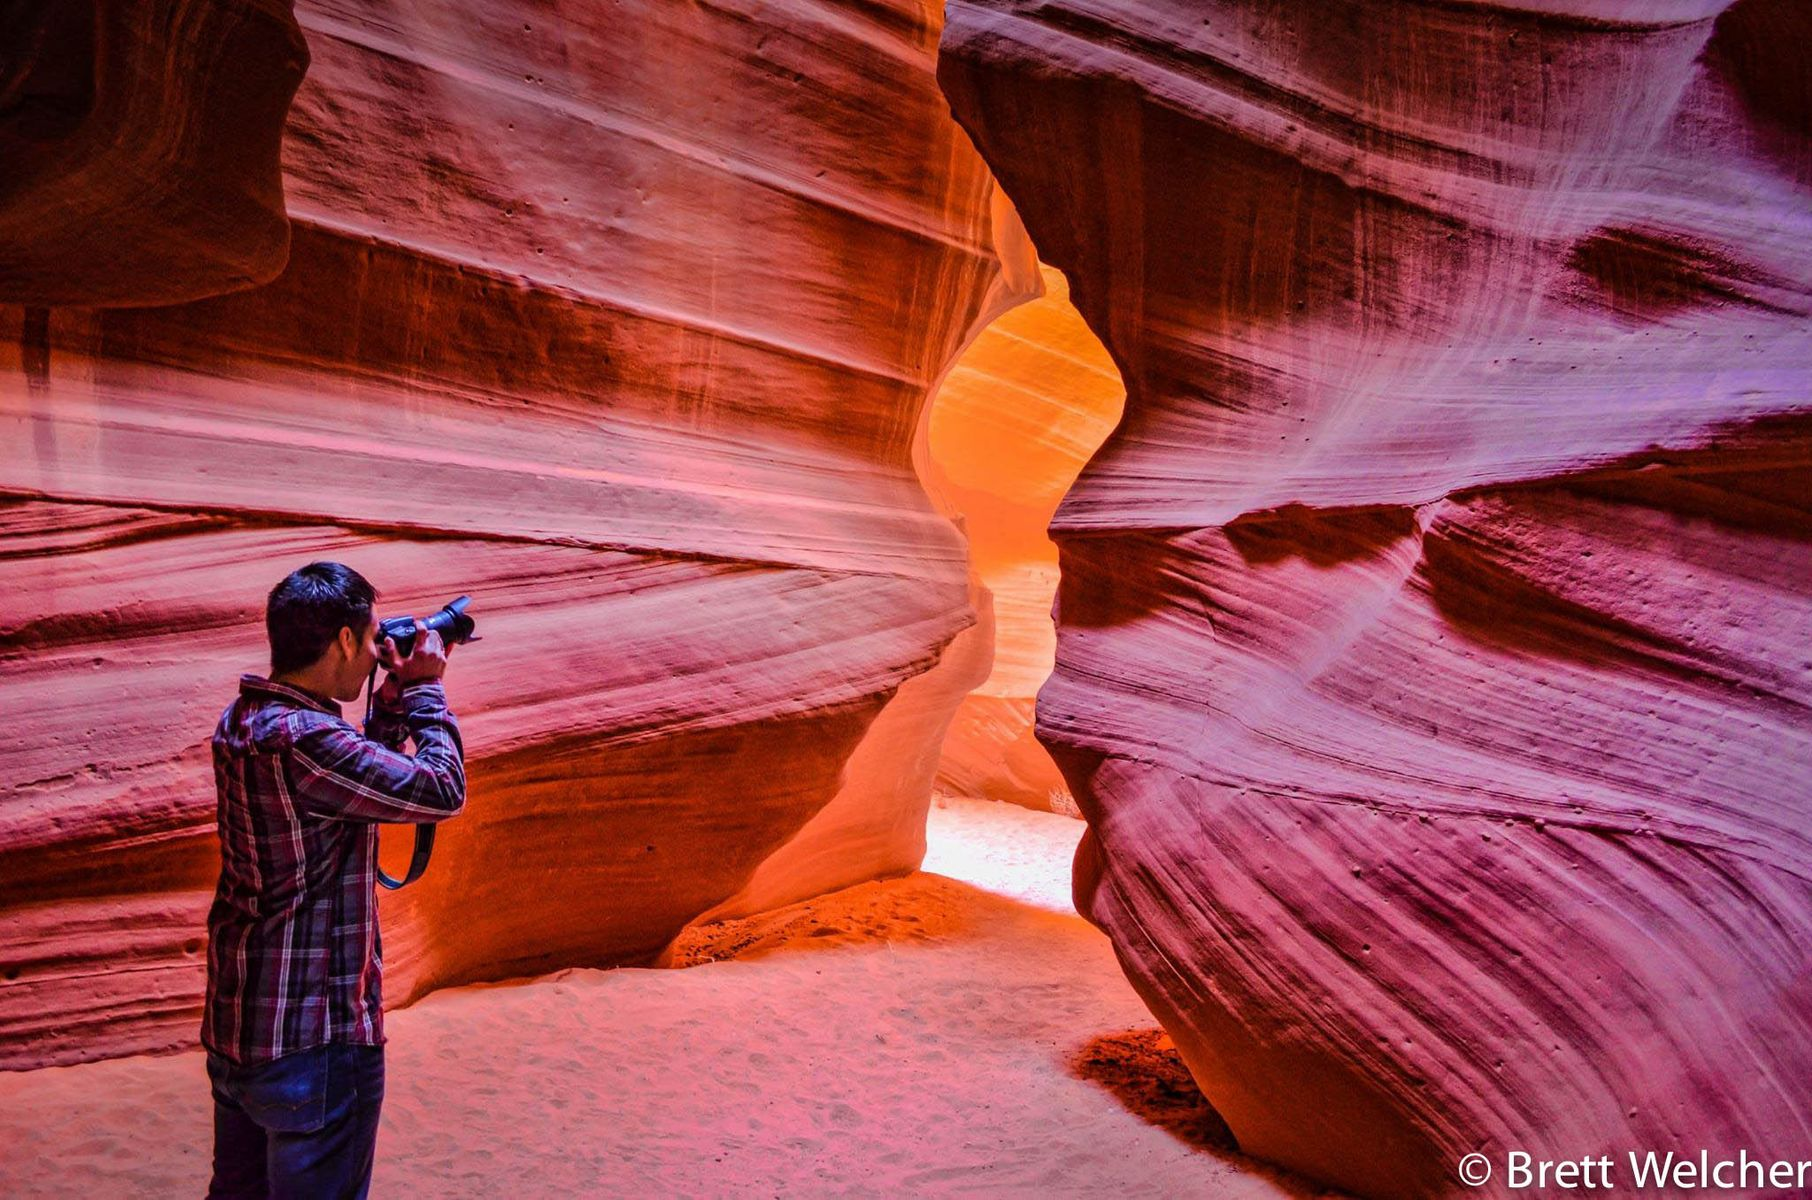 Antelope Canyon is the most visited and most photographed slot canyon in the American Southwest. It is located on Navajo land near Page, Arizona and was once home to herds of pronghorn antelope. Today, it holds one of our planet's greatest natural art gall